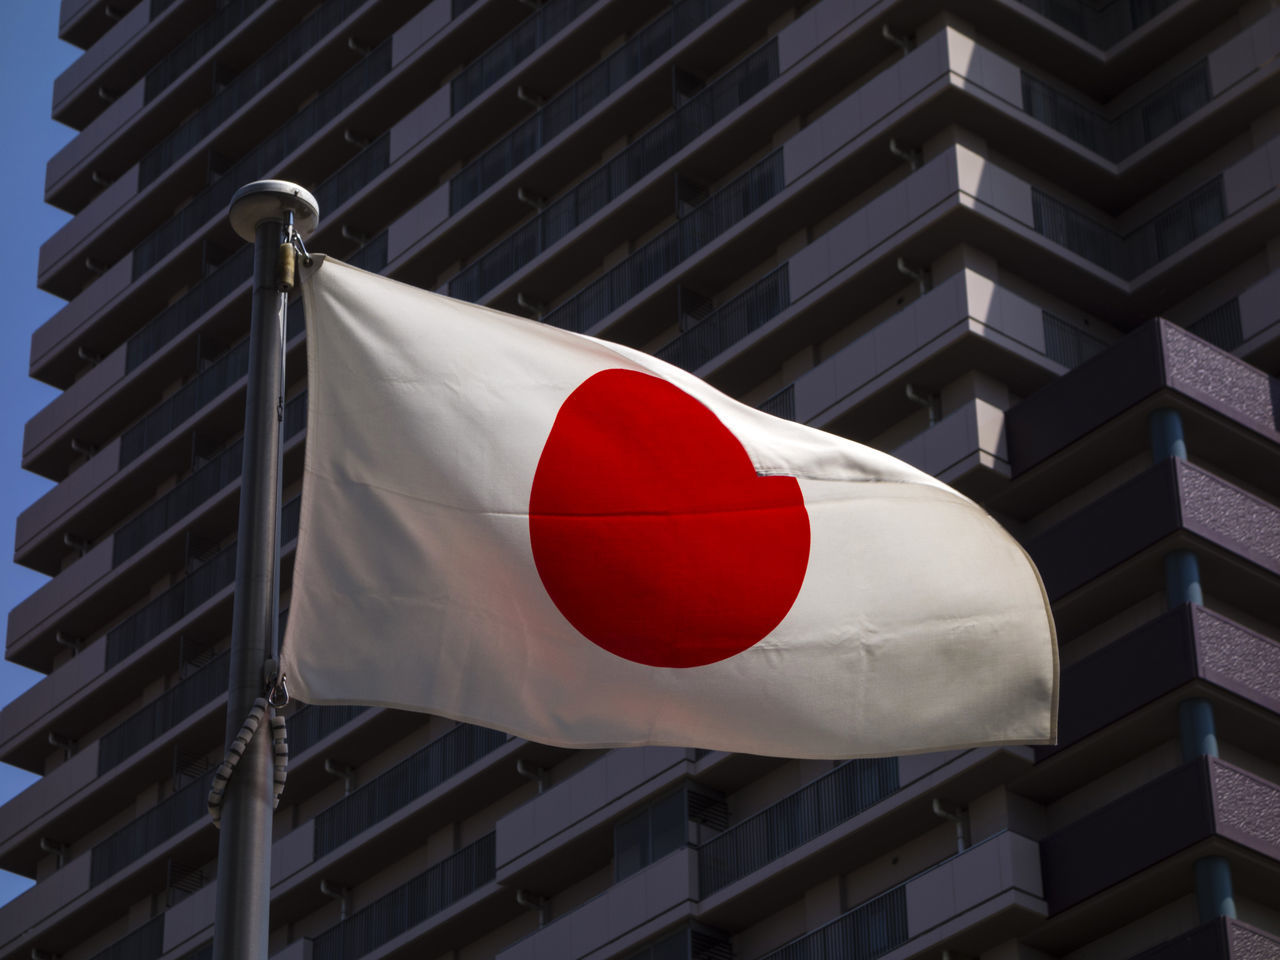 Japanese flag on a national holiday Banner Close-up Day Flag Flame Hinomaru Hoisted Banners Hoisted Flag Hoisting Japan Low Angle View National Holiday National Symbol No People Official Outdoors Patriotism Pattern Red Red On White White Color